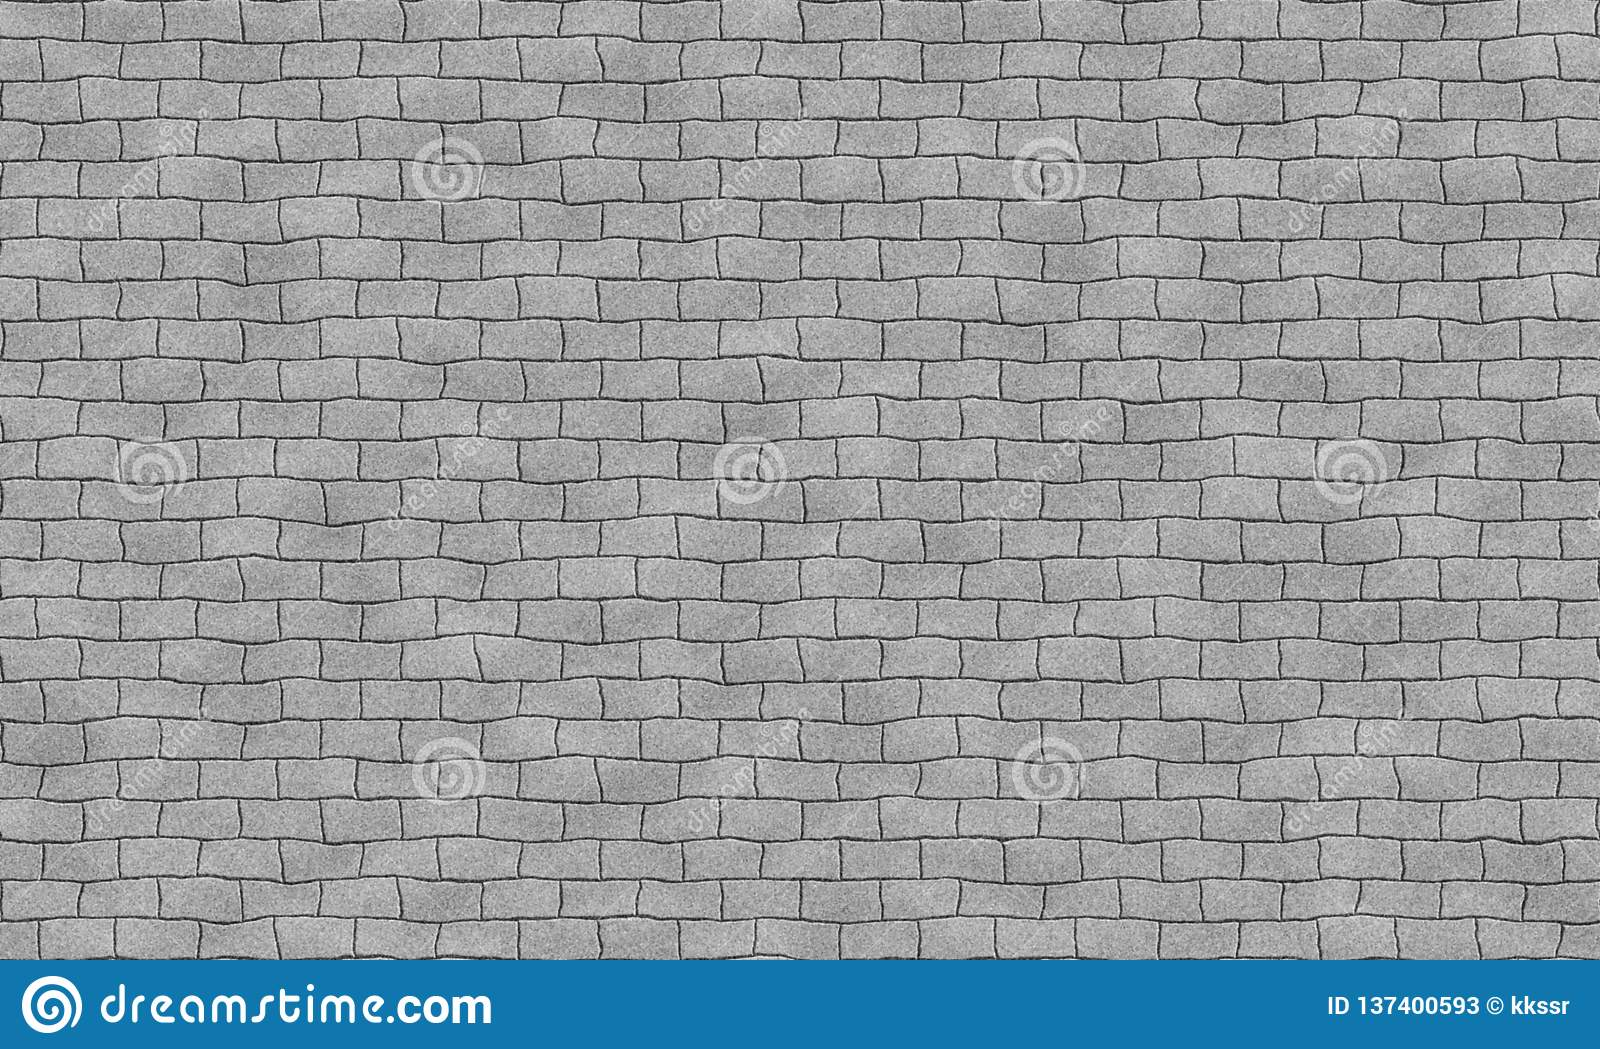 Seamless grey brick wall tile able pattern. Uneven shape. For interior, exterior render material mapping.